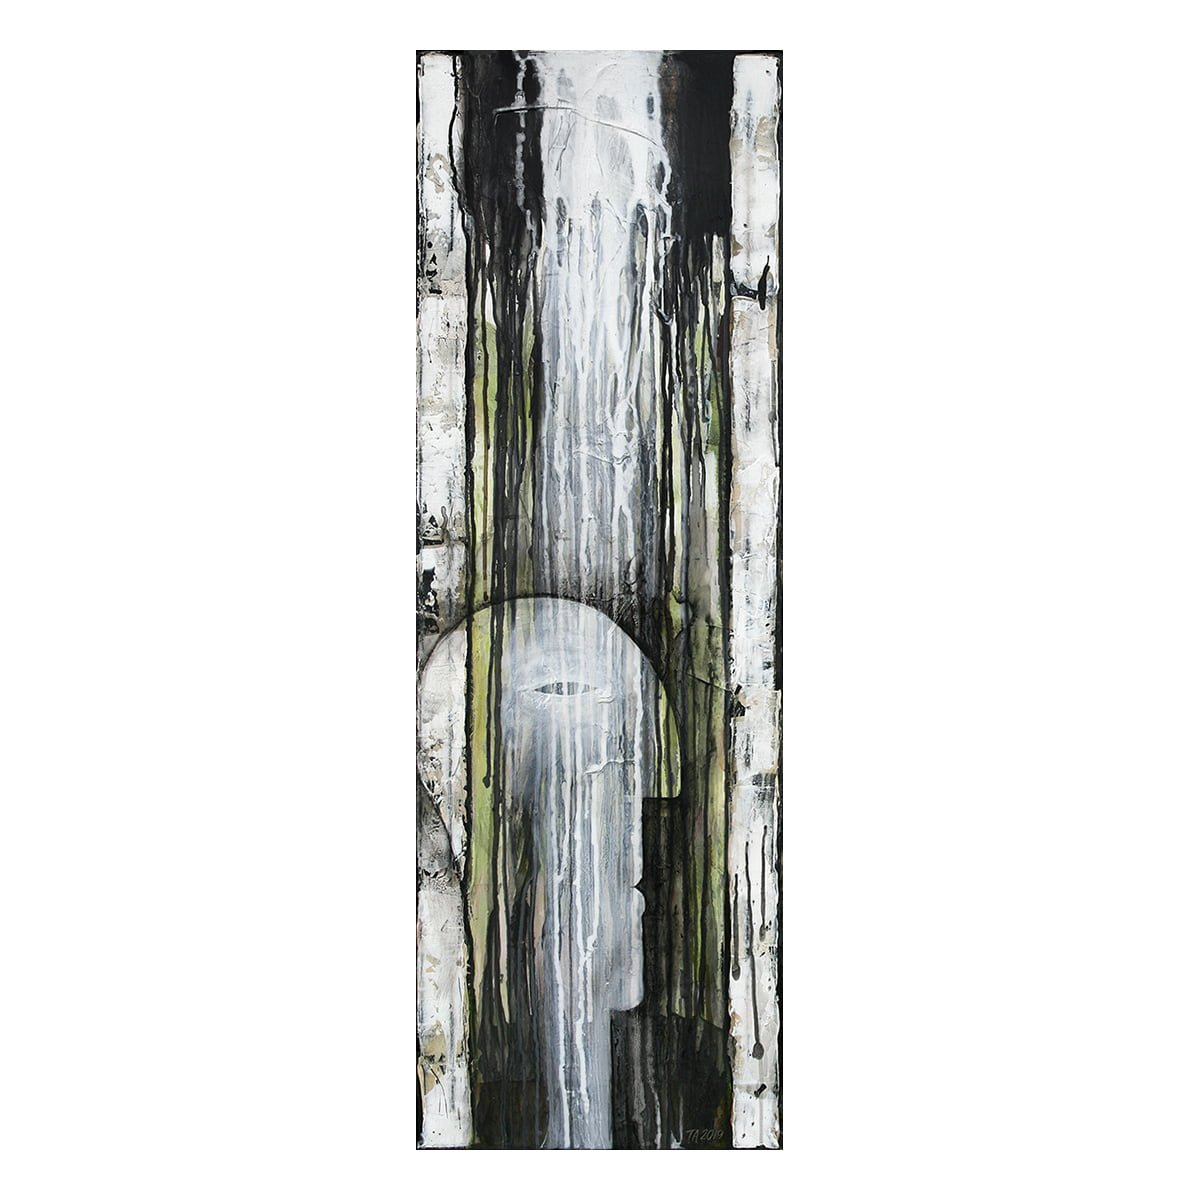 Photo of painting by Terese Andersen, 120x40, title; Bright Mind